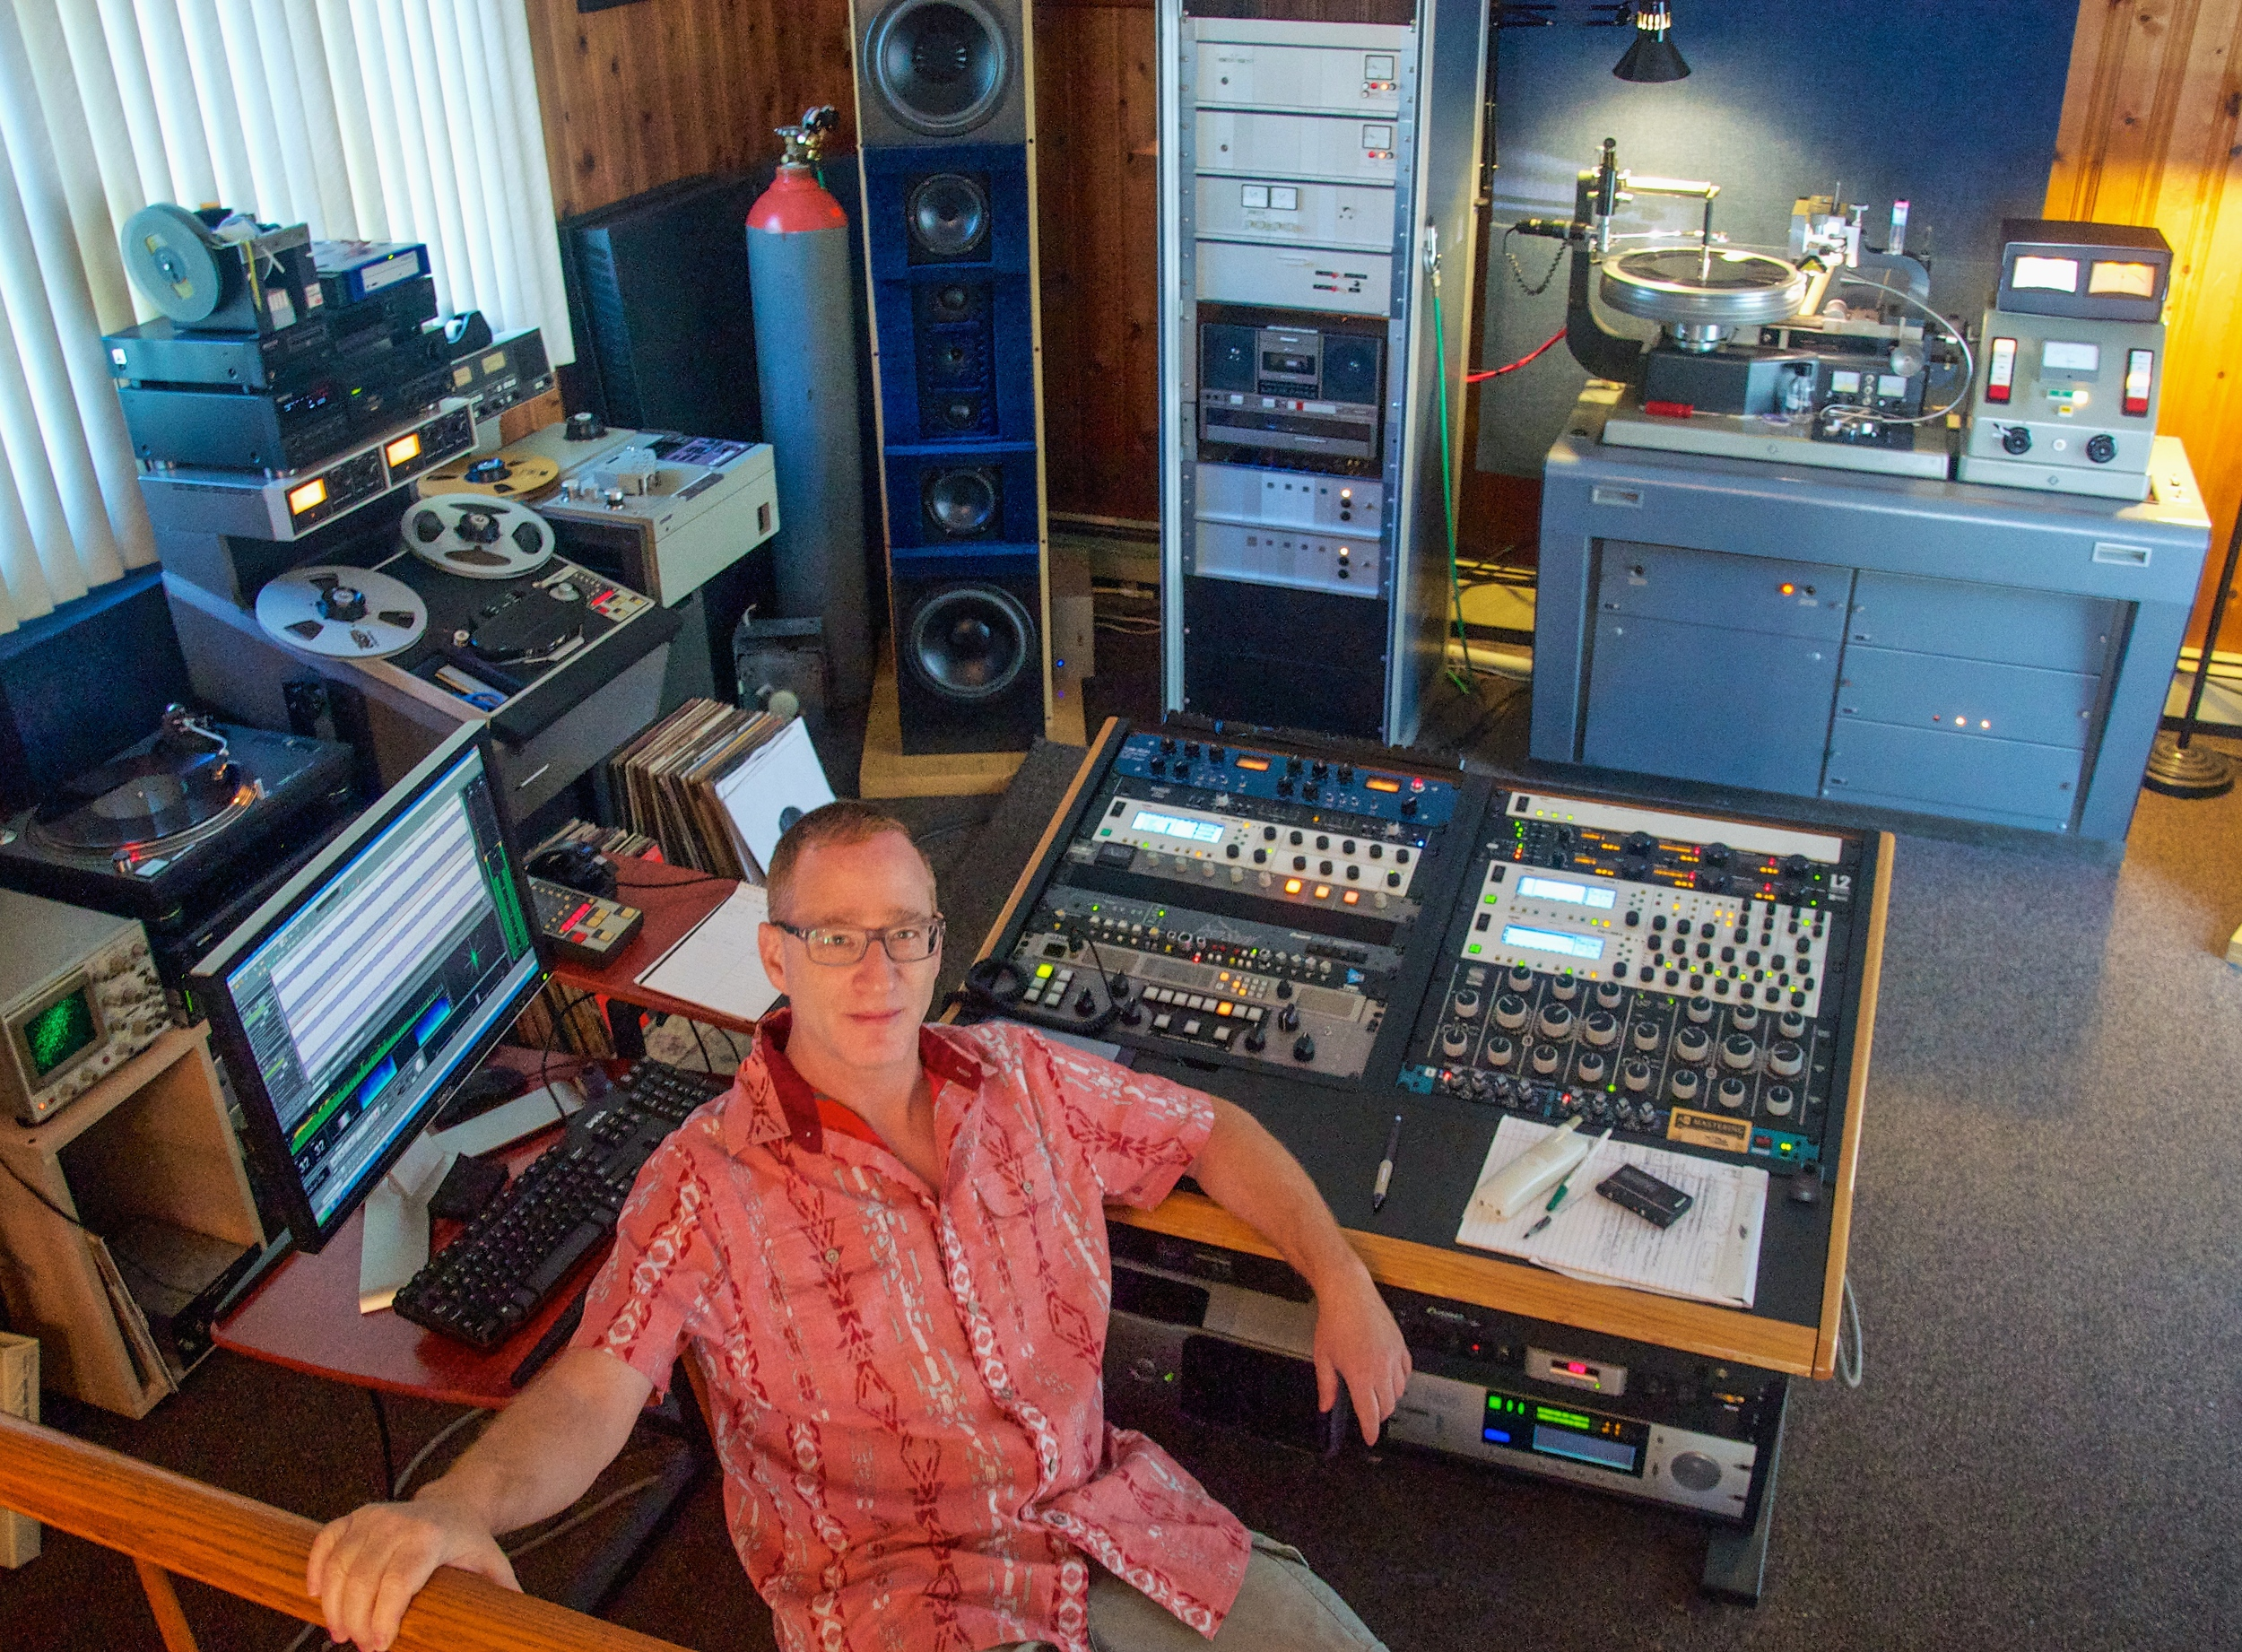 When Alex Abrash was house hunting in 2010, he needed a home with a space where he could operate his CD mastering business, AA Mastering.  READ MORE